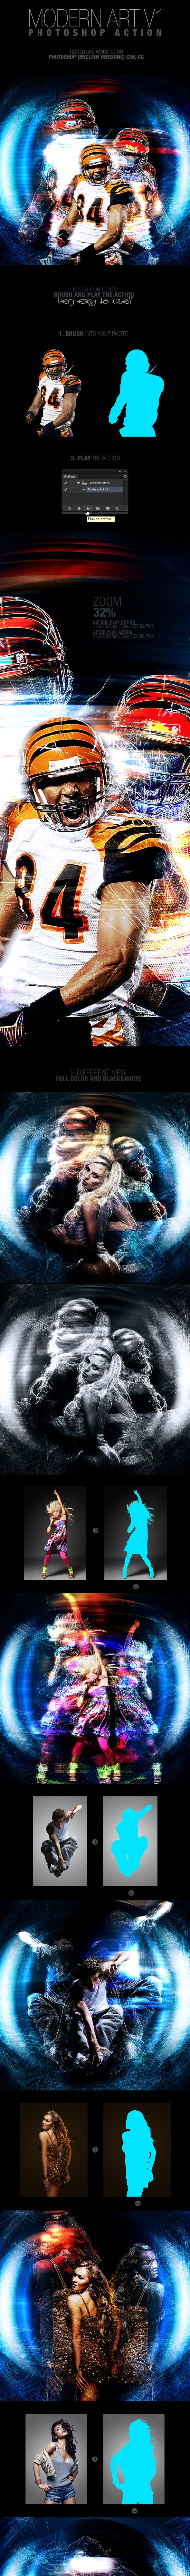 Modern Art V1 Photoshop Action - Photo Effects Actions